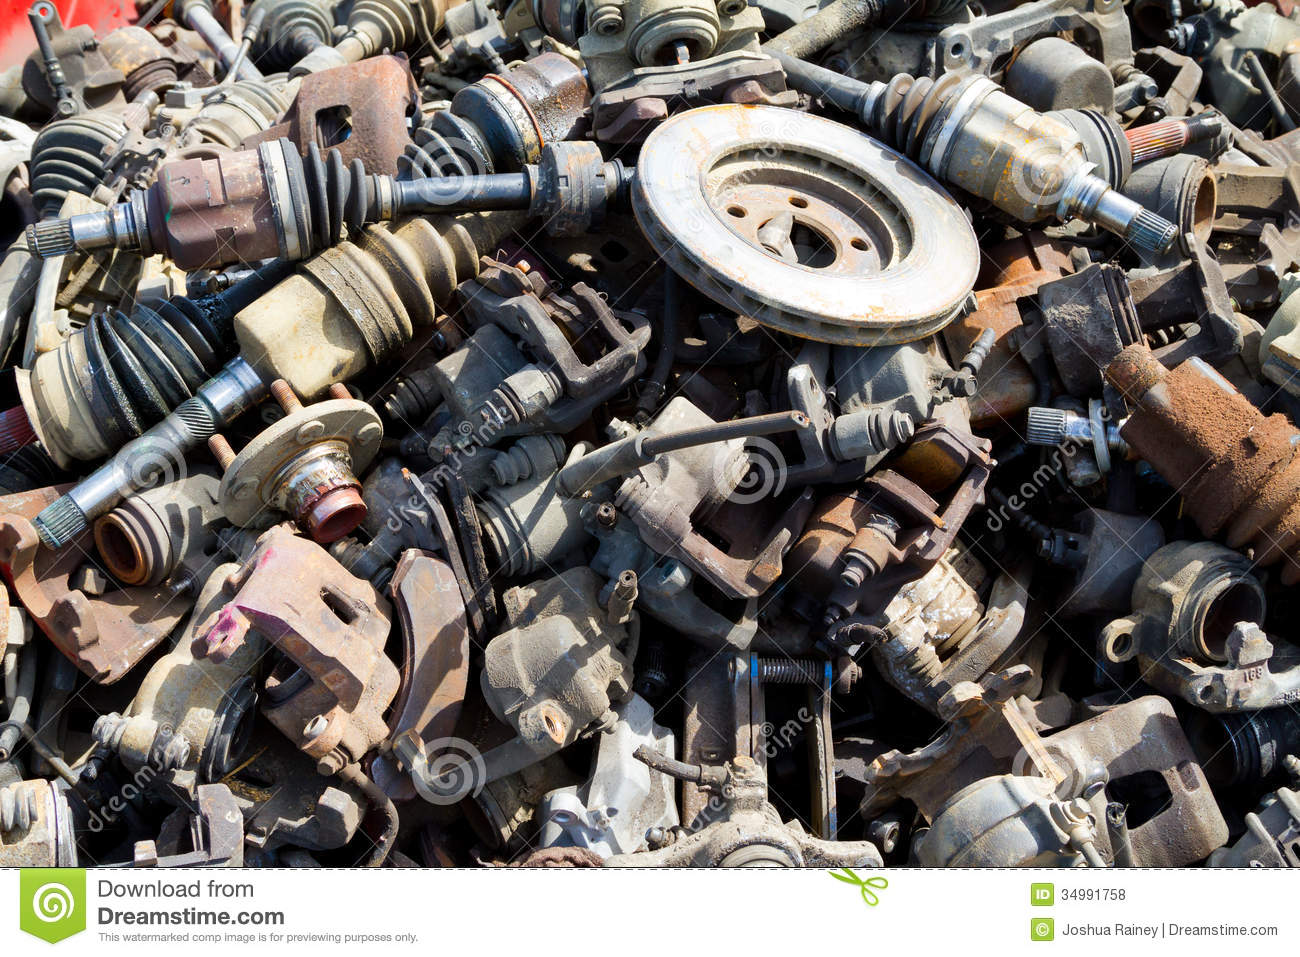 Salvage yards for cars near me 11